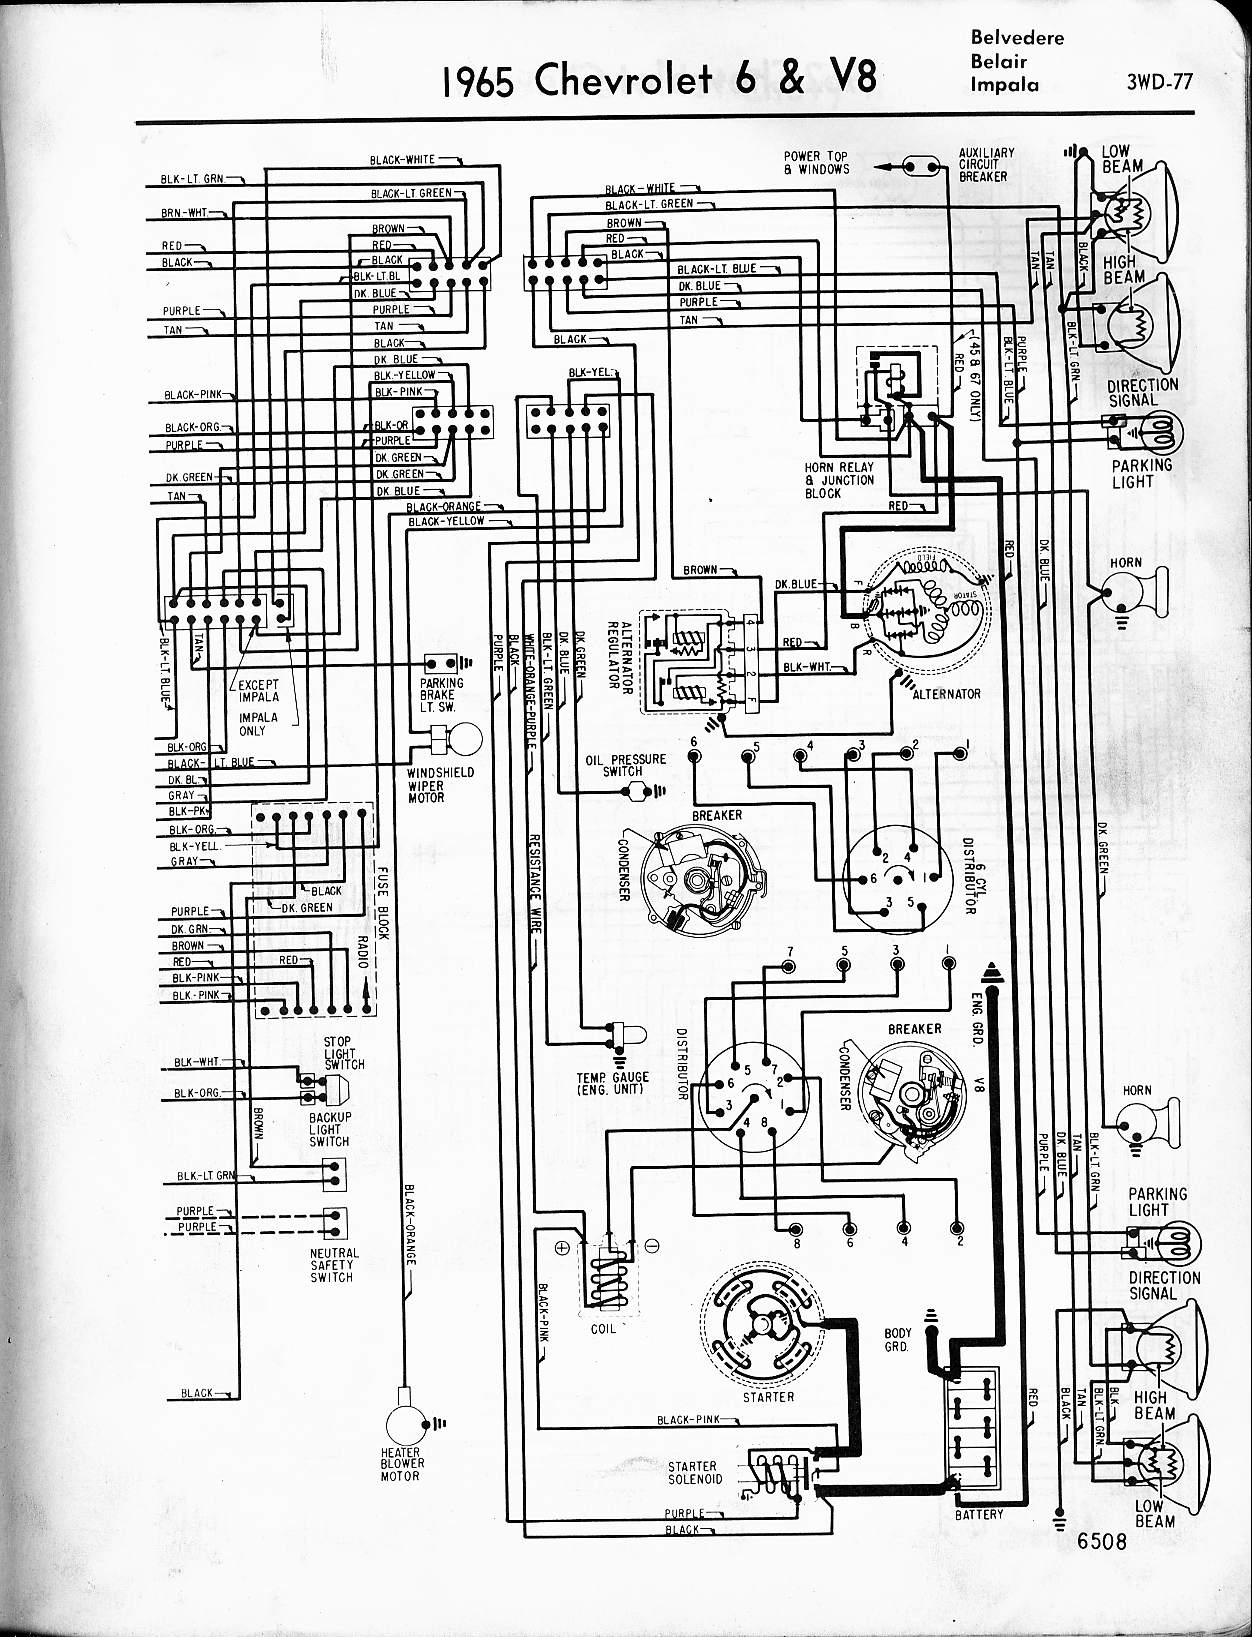 MWireChev65_3WD 077 69 chevelle wiring diagram 69 chevelle engine wiring diagram  at gsmx.co